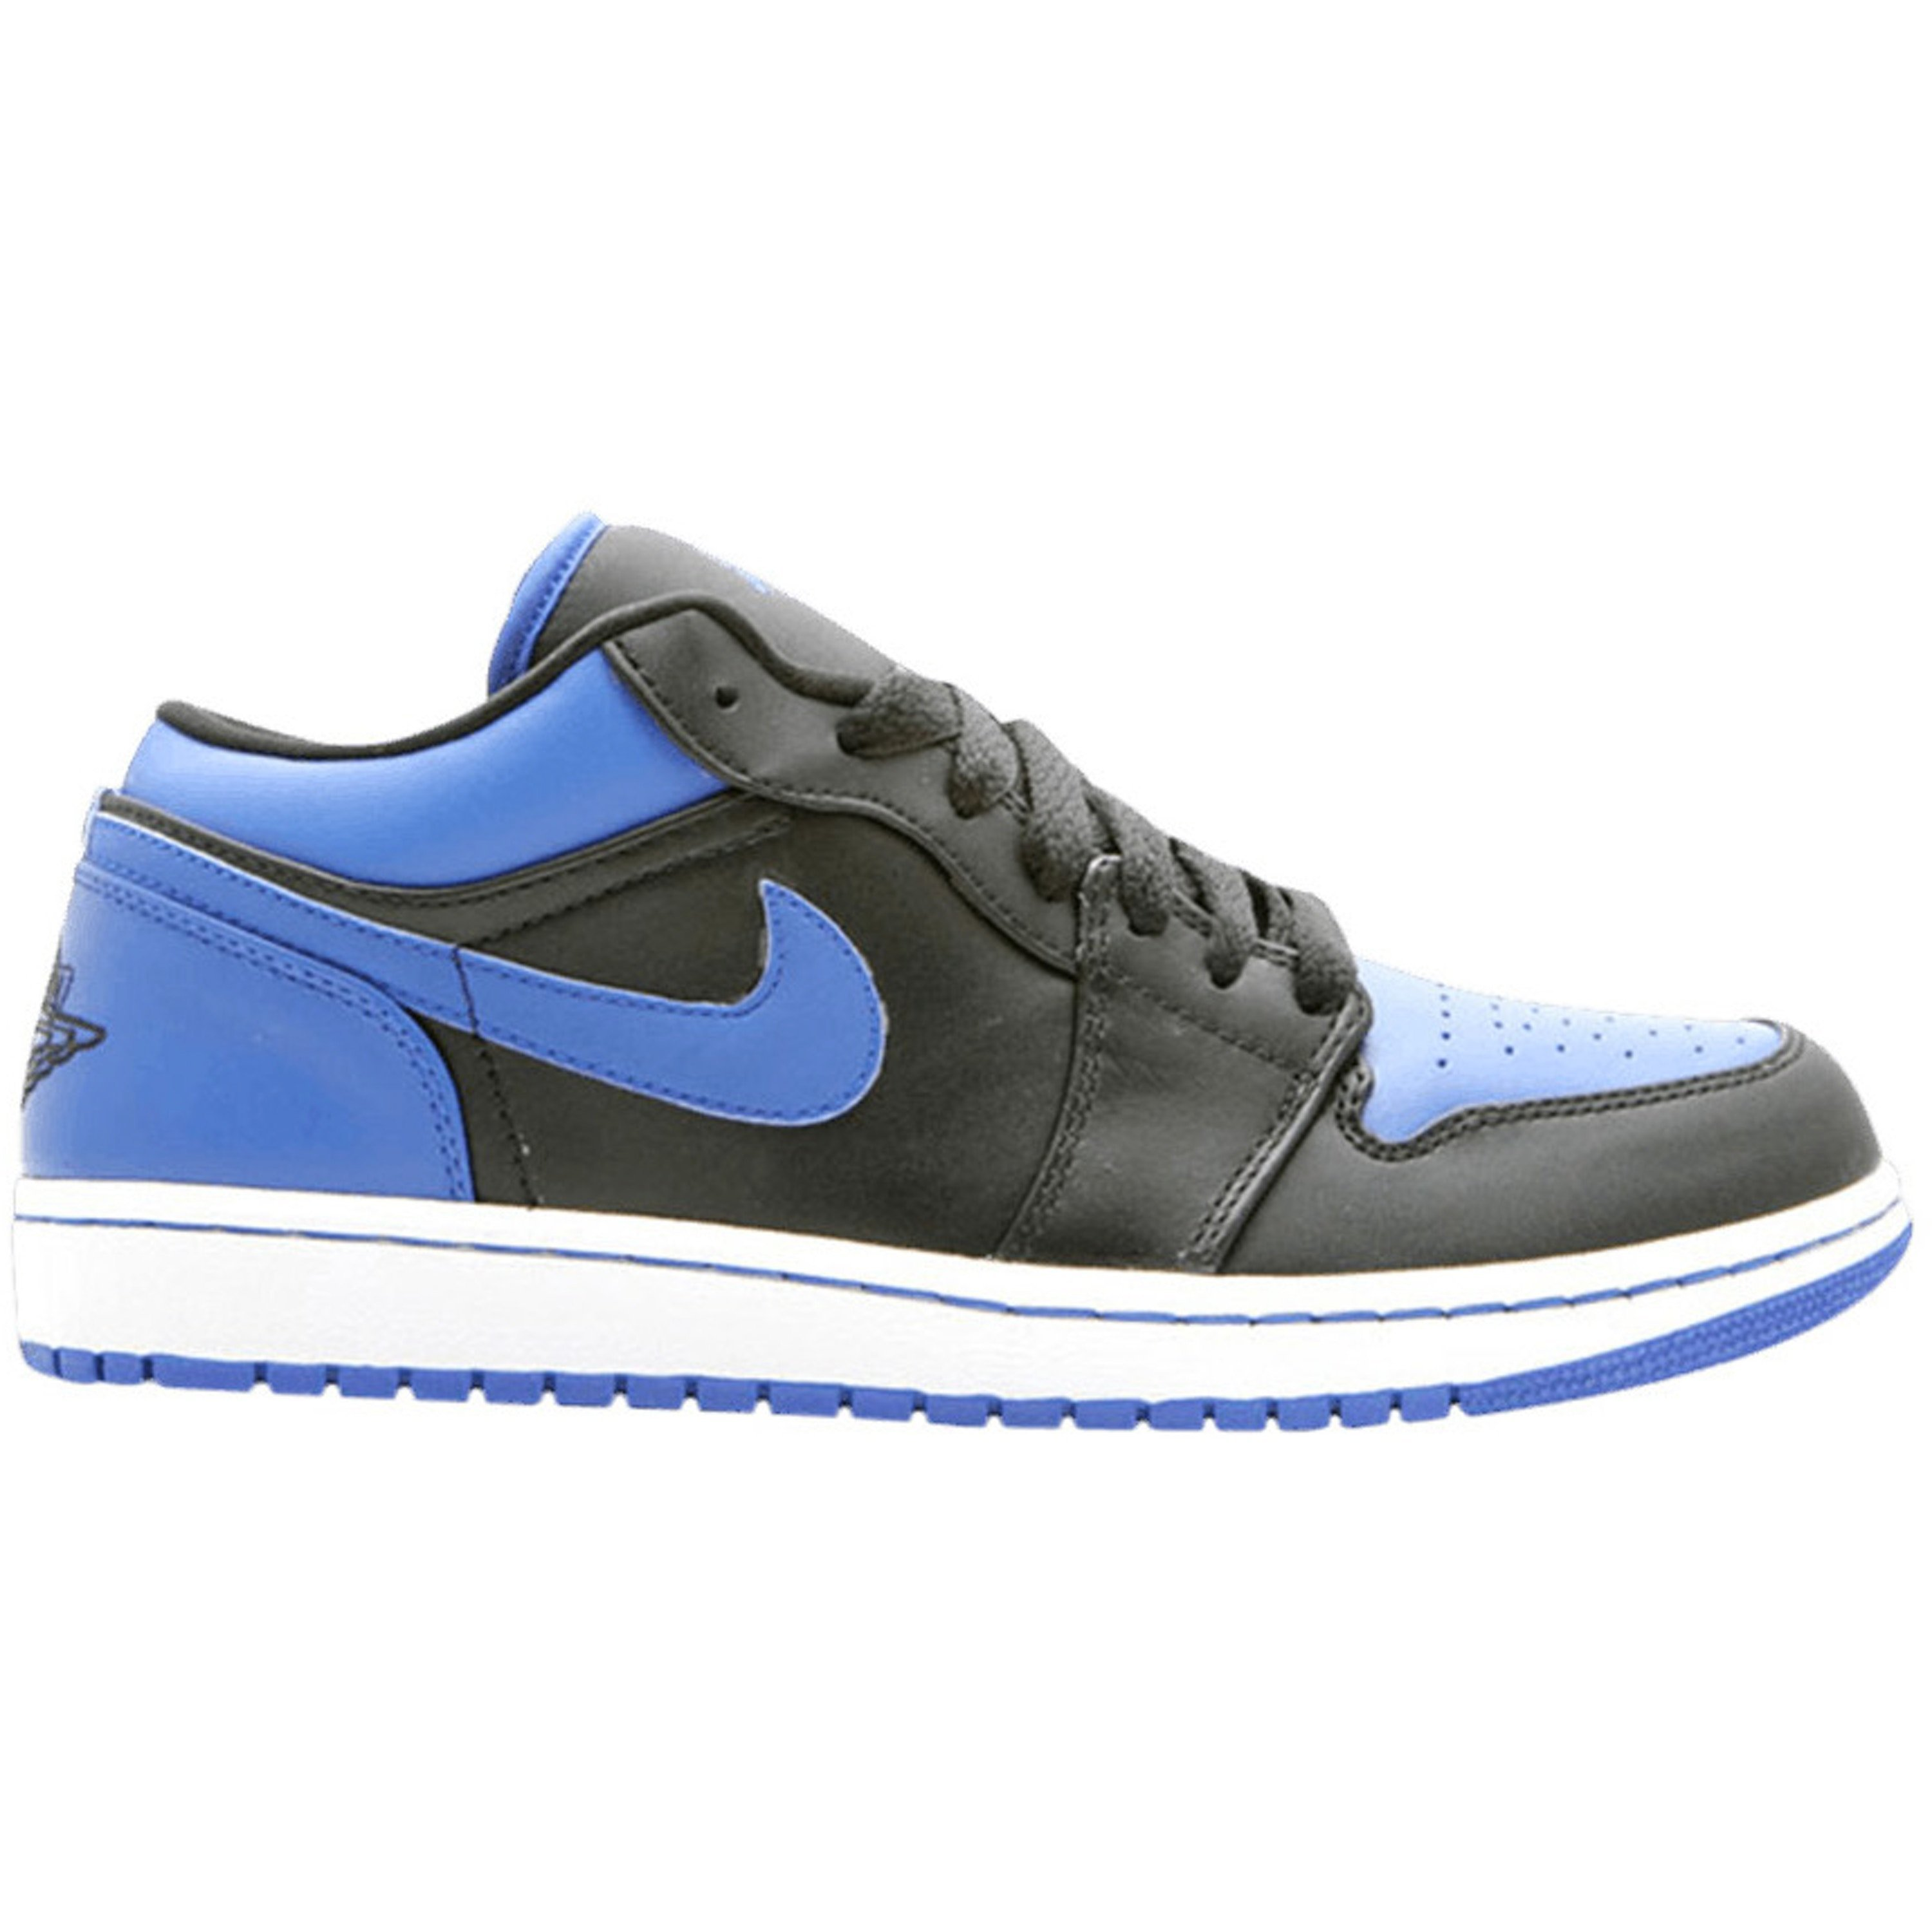 Jordan 1 Phat Low Varsity Royal (338145-041)